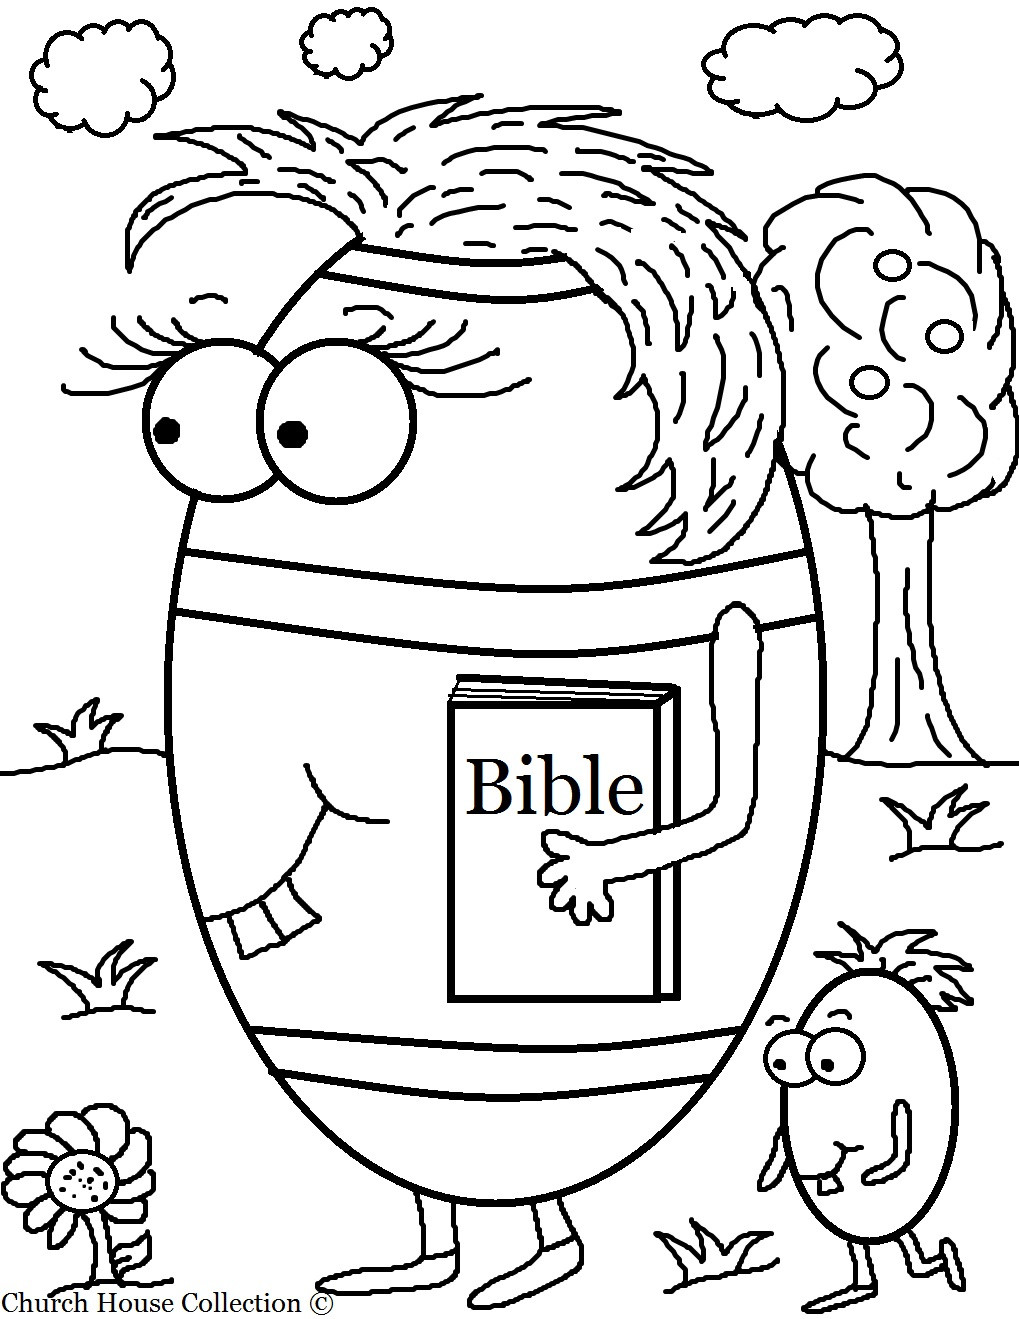 Free Coloring Pages For Sunday School  Church House Collection Blog Free Easter Egg Carrying Her